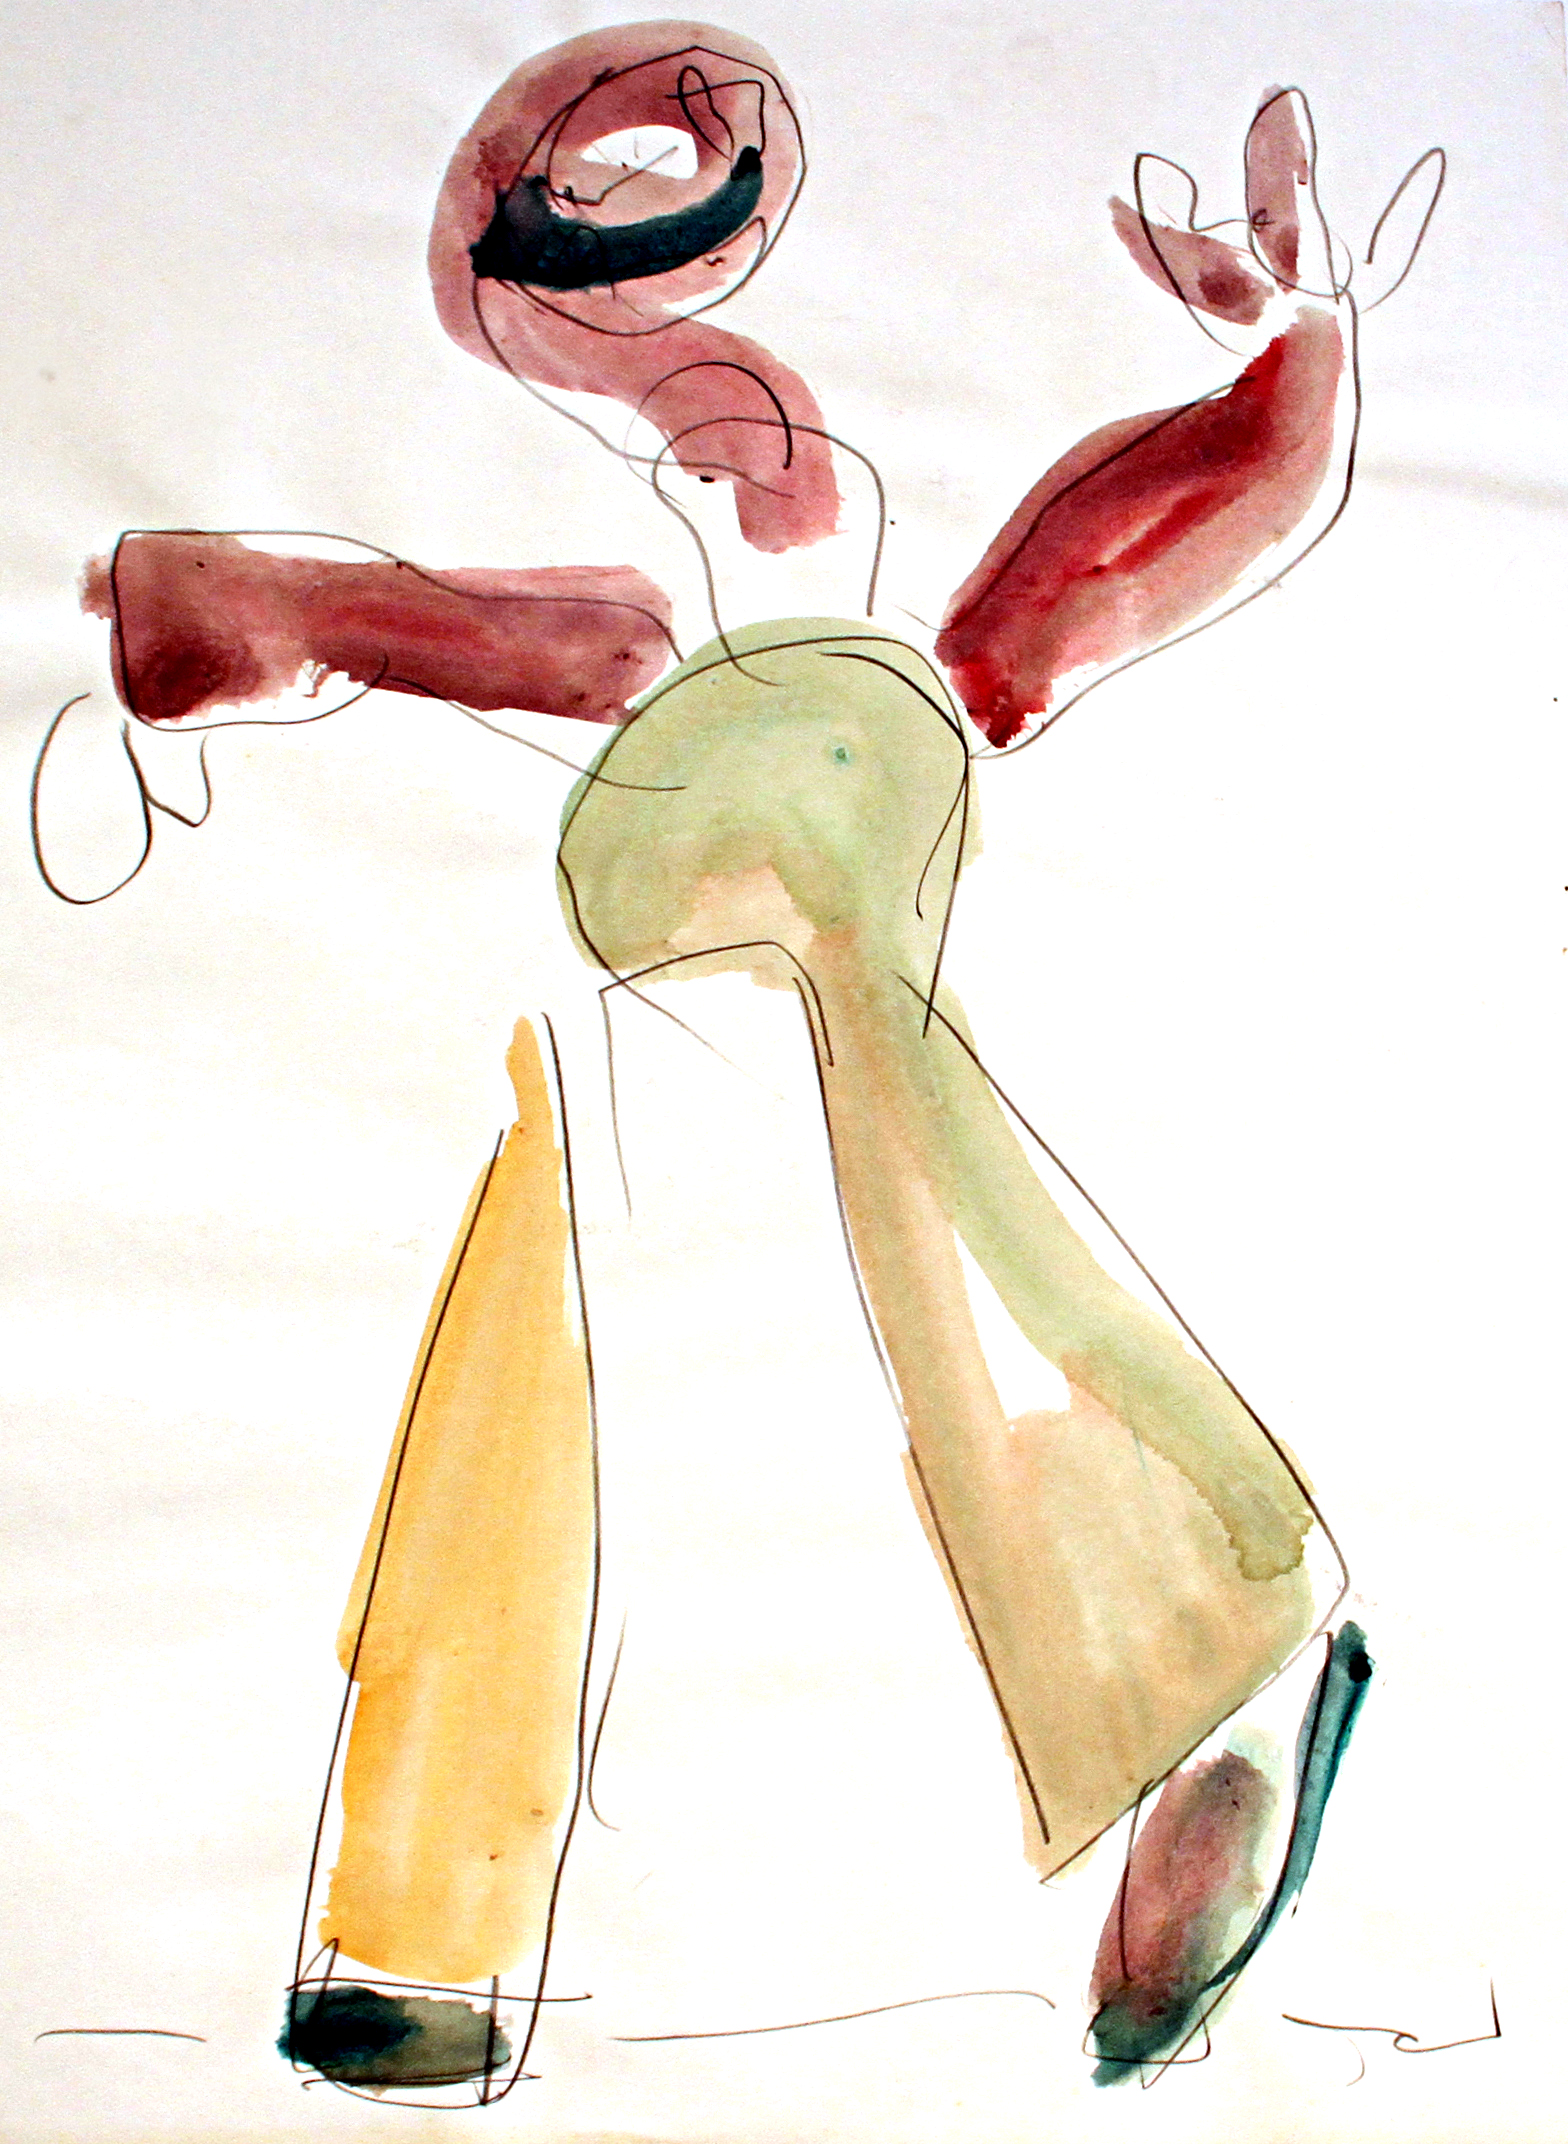 CANDY MAN  Mixed Media on Paper 24 x 18 inches (61 x 46 cm)